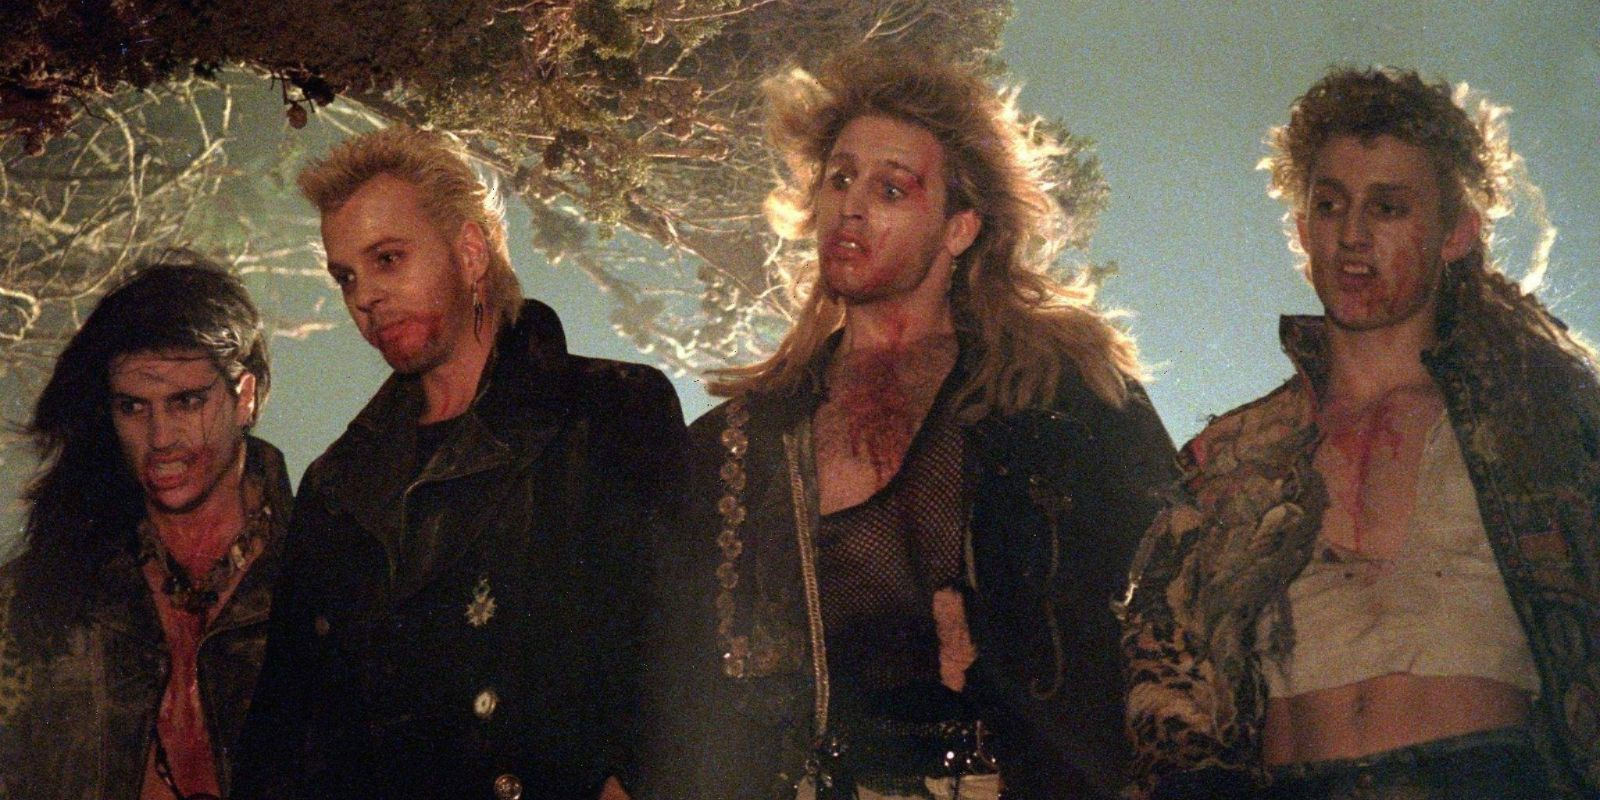 Lost Boys: Kiefer Sutherland Ate A Man's Head In Deleted Scene